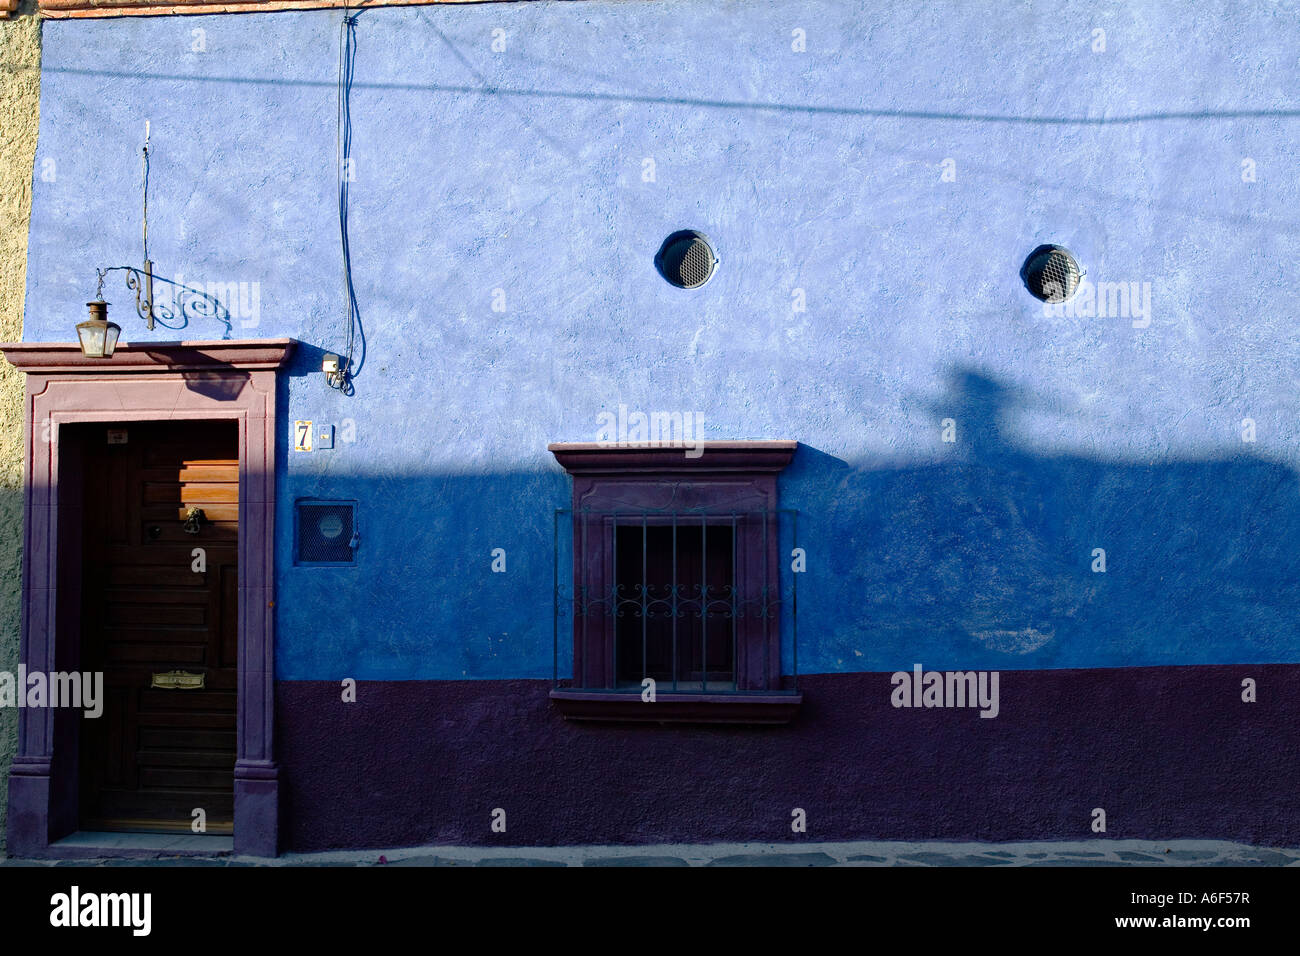 Blue Trim On Window Stockfotos & Blue Trim On Window Bilder - Alamy